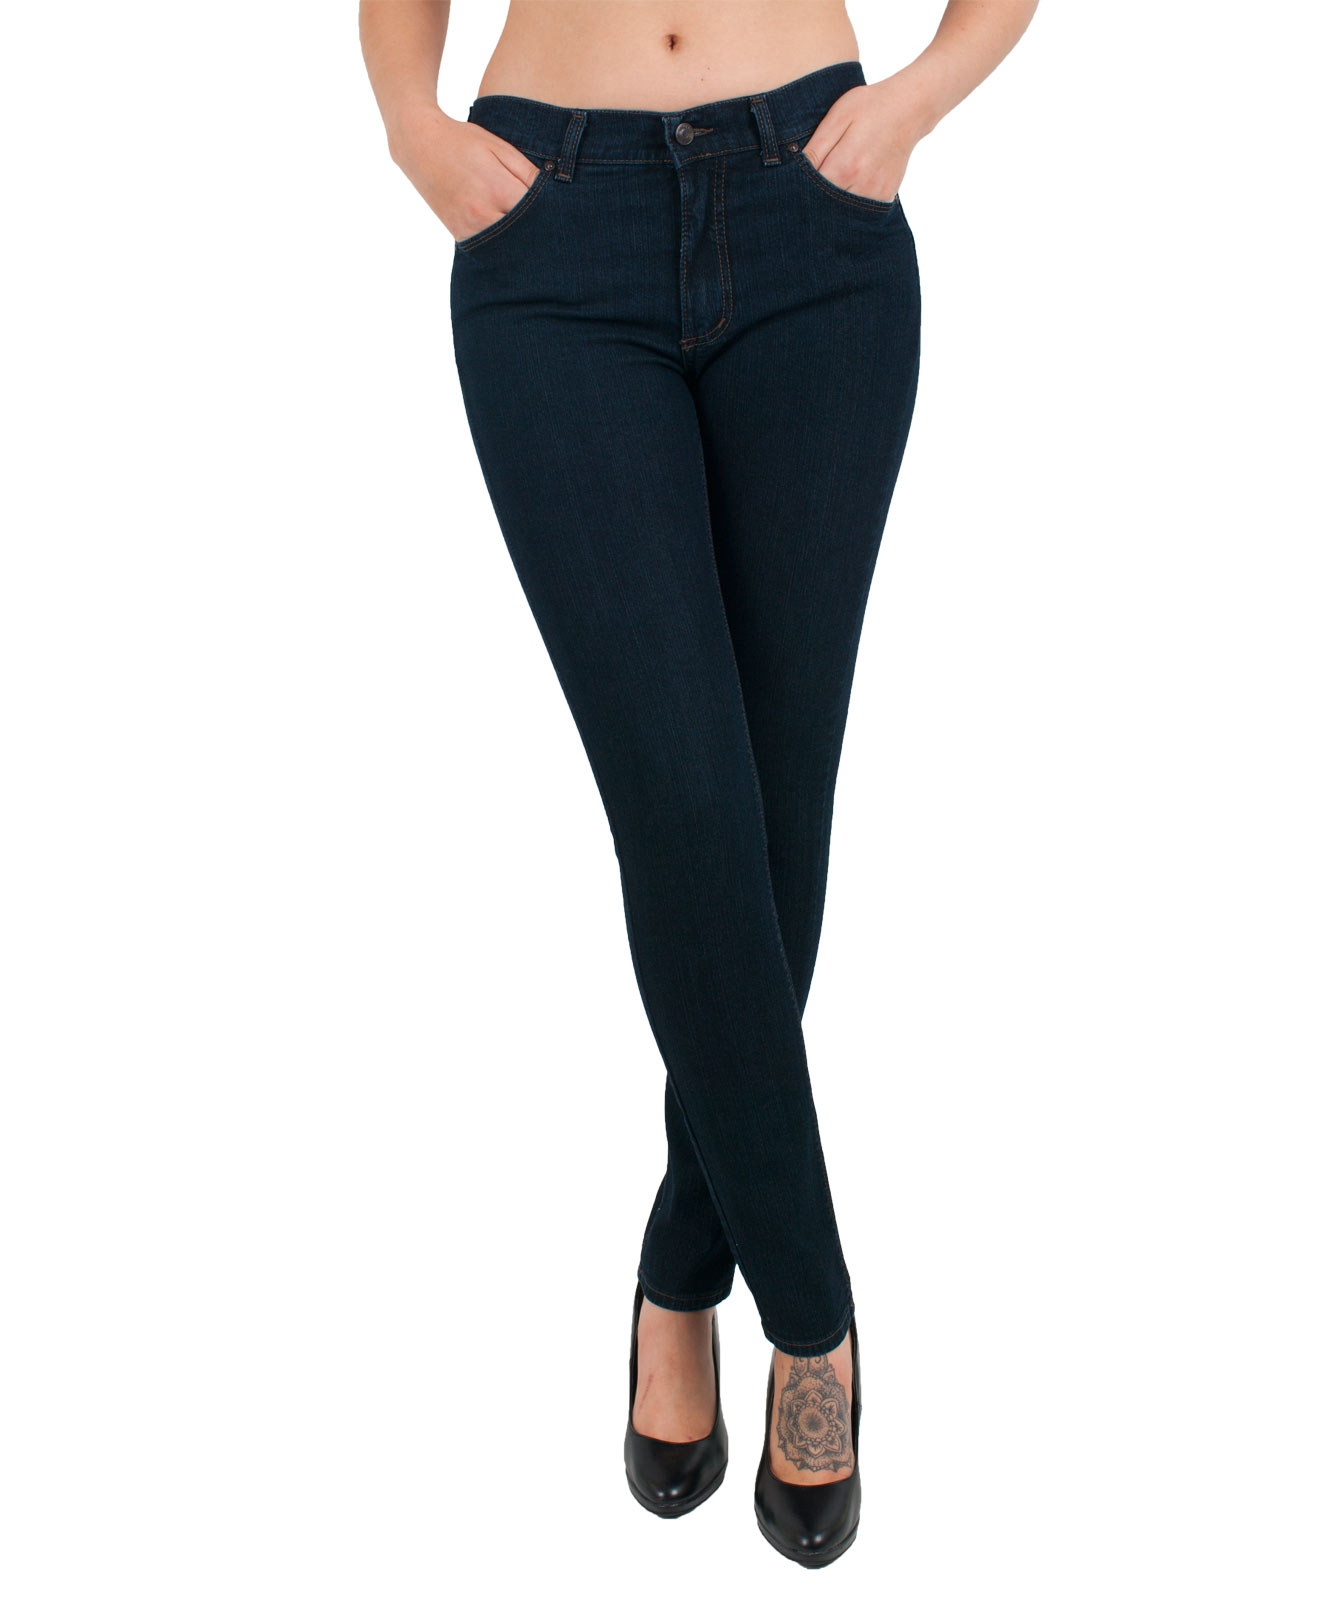 Hosen - Angels Jeans Röhre Skinny in Dark Washed  - Onlineshop Jeans Meile